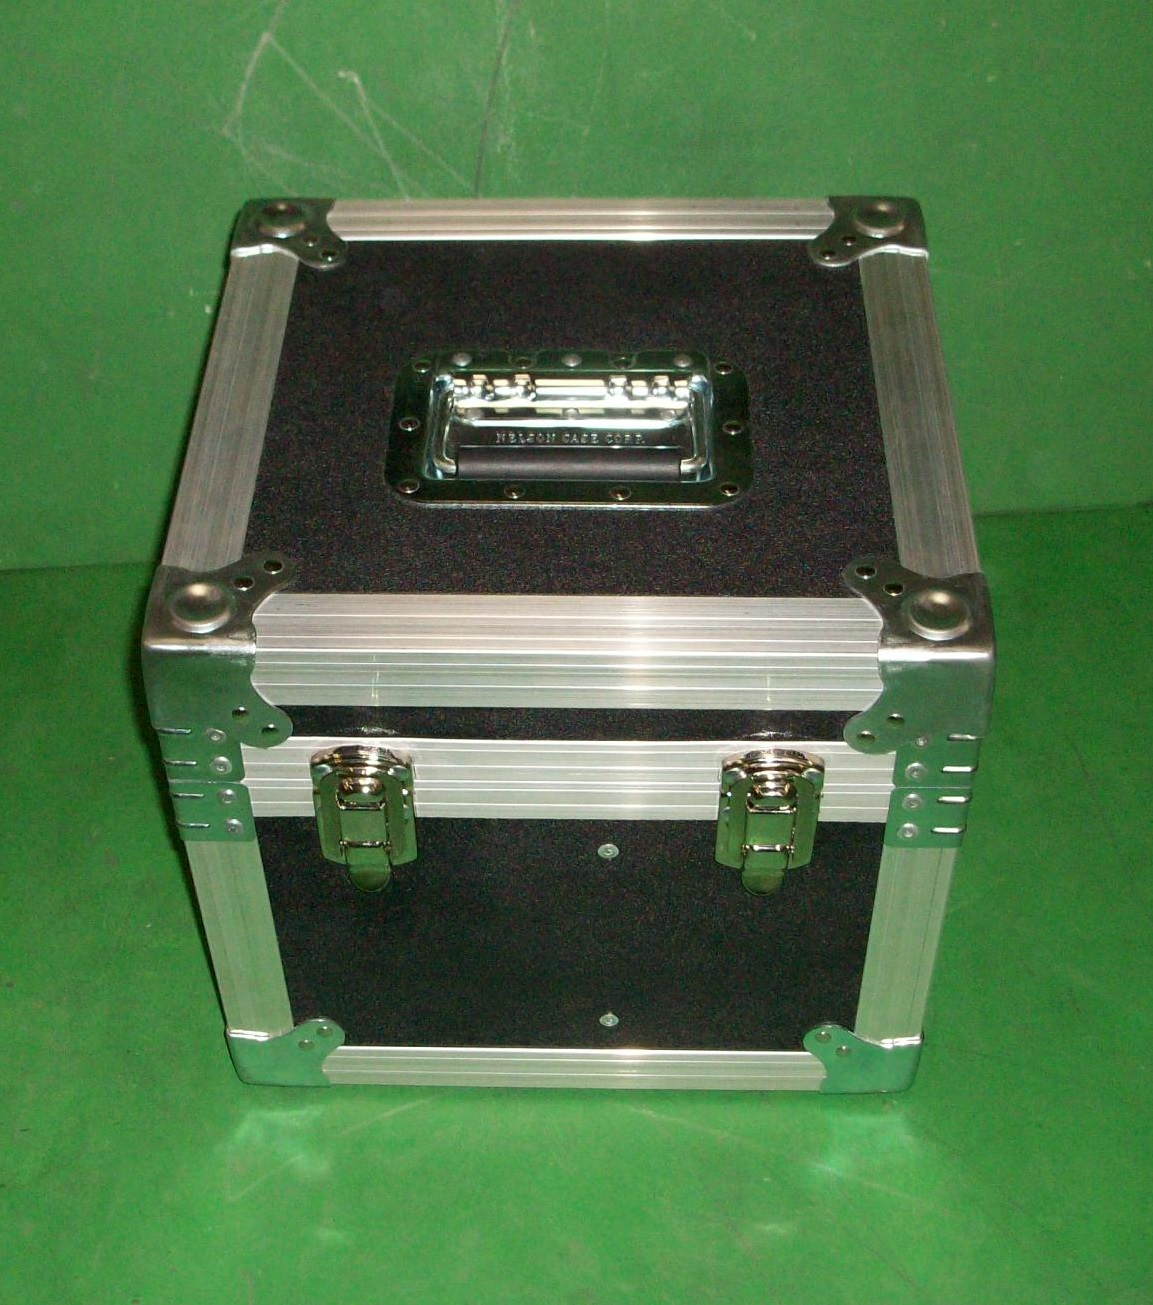 Print # 6376 - Custom Case for Spare Parts with Removable Partitions By Nelson Case Corp